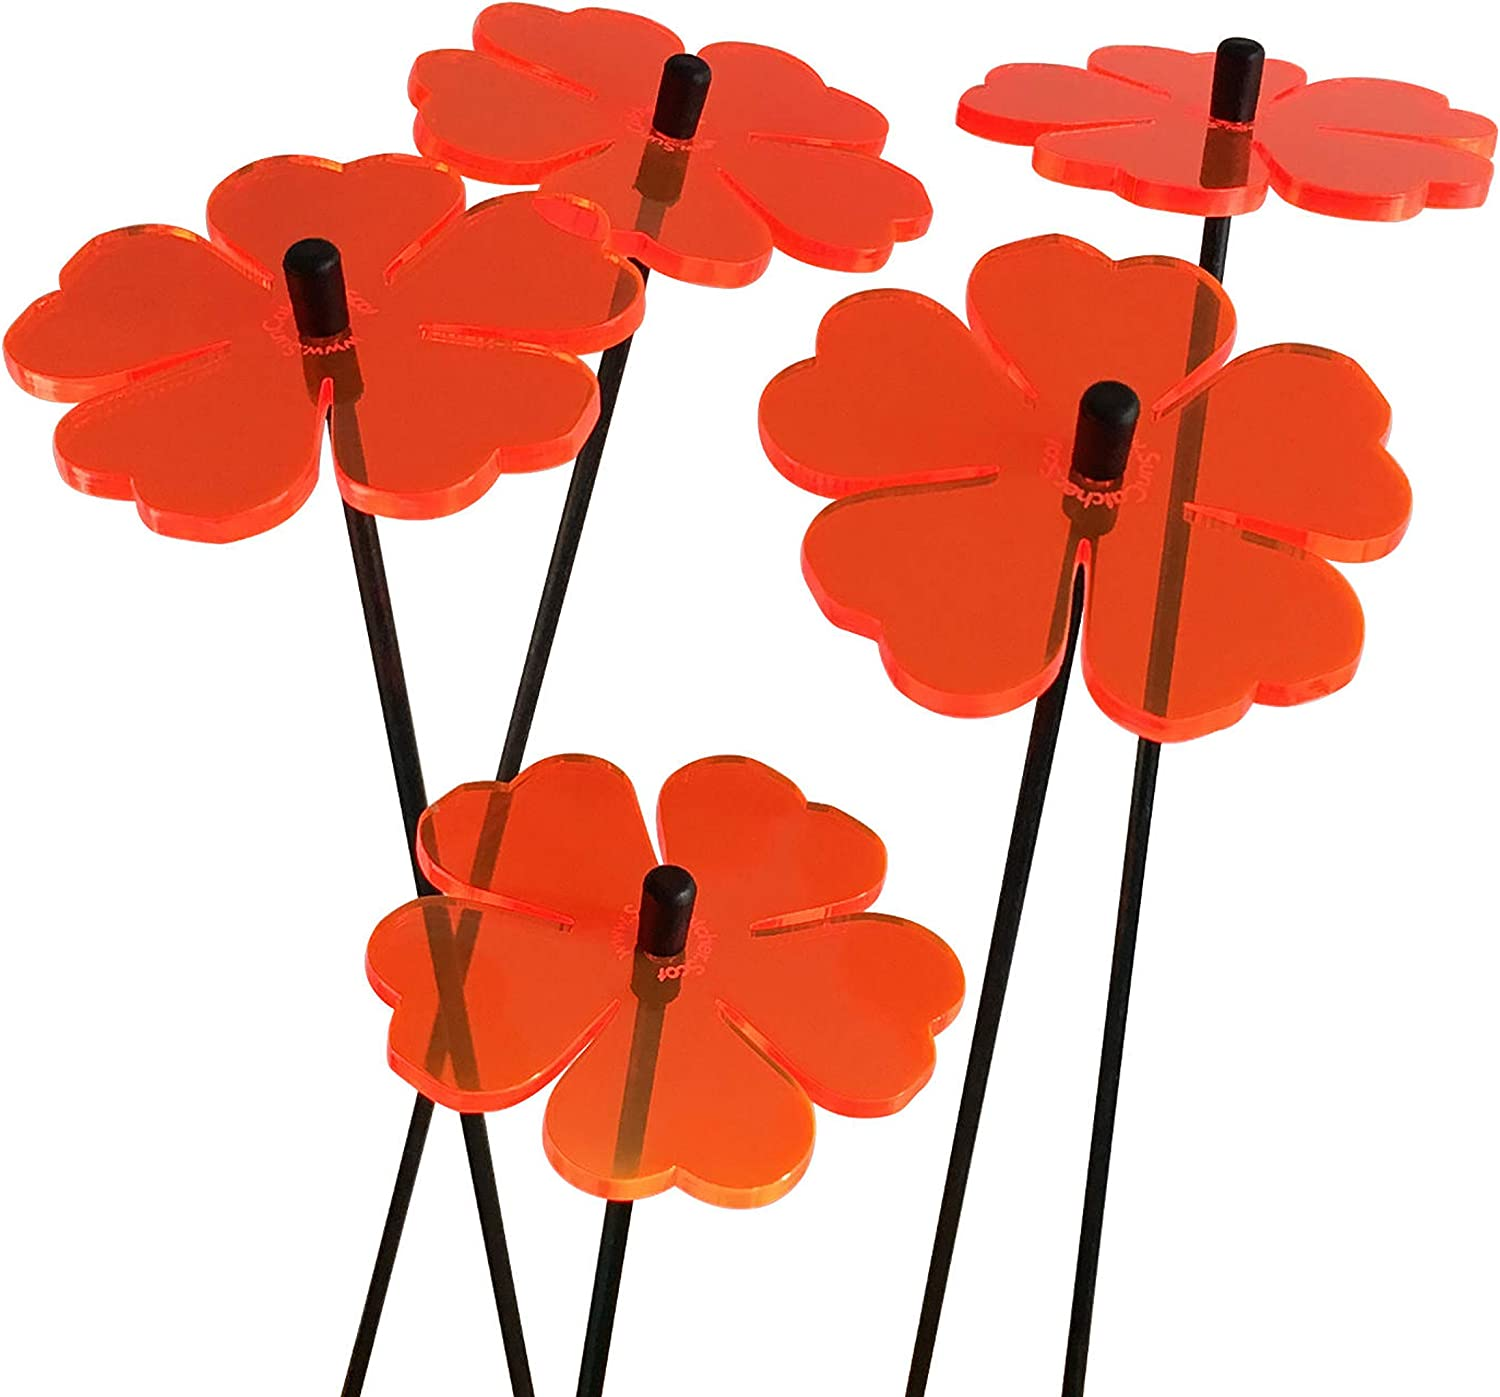 Garden Ornaments Double Blossom, Set of 5 Small Decorative Garden Stakes, Outdoor Yard Accessory, Great Gardeners Gift, Colour:Red : Patio, Lawn & Garden